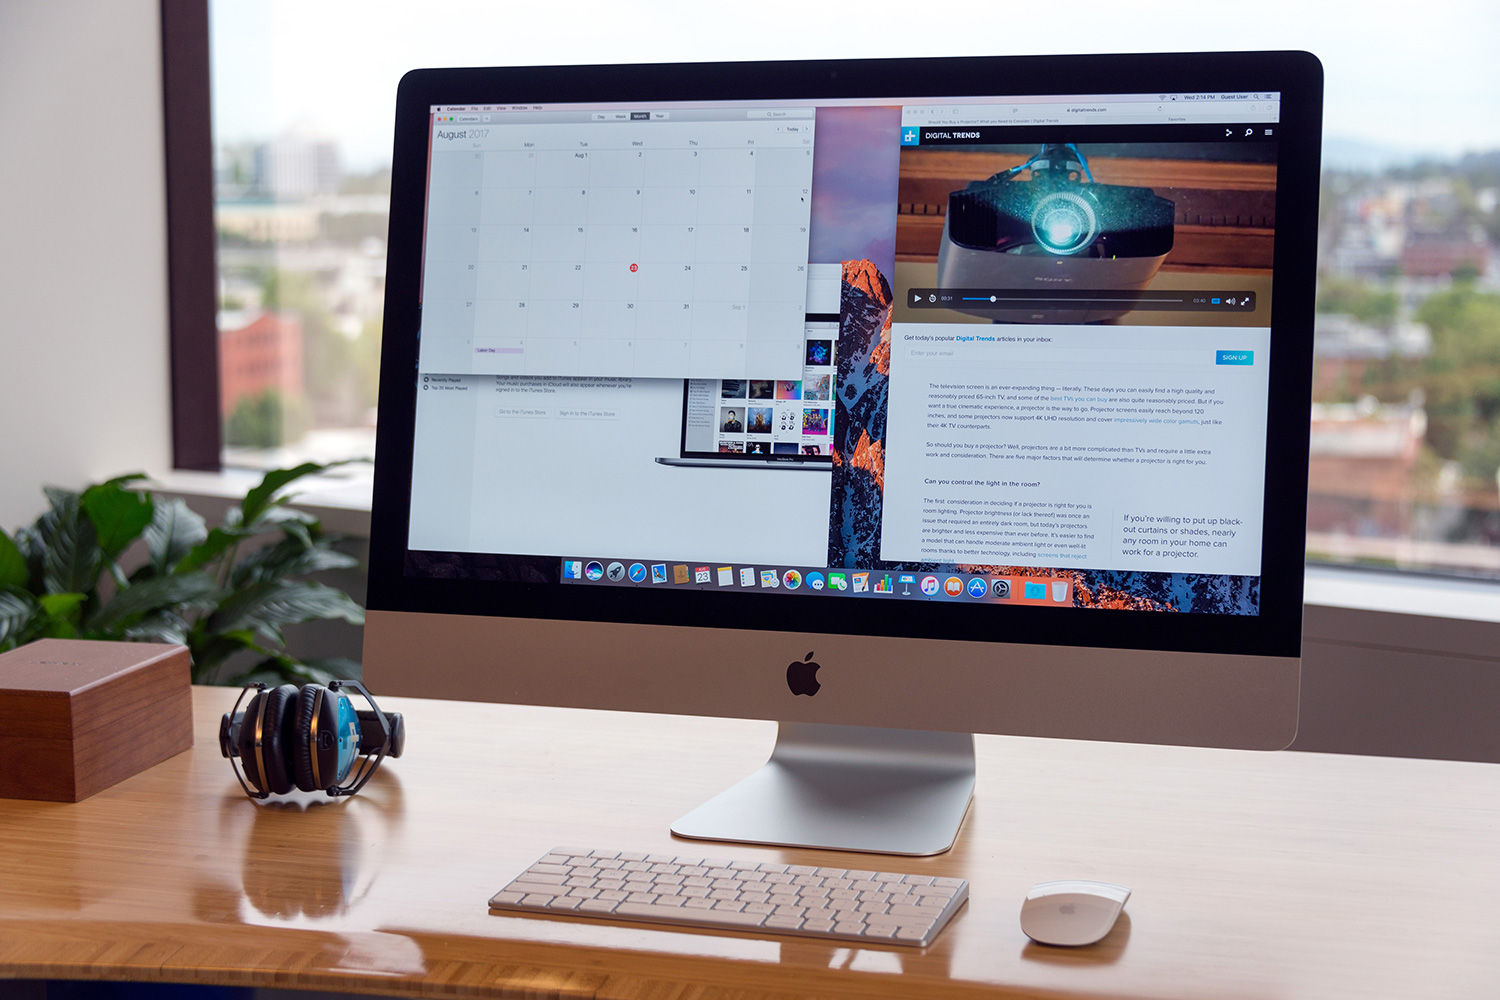 Apple Computers Apple Imac With Retina 5k Display (2017) Review | Digital